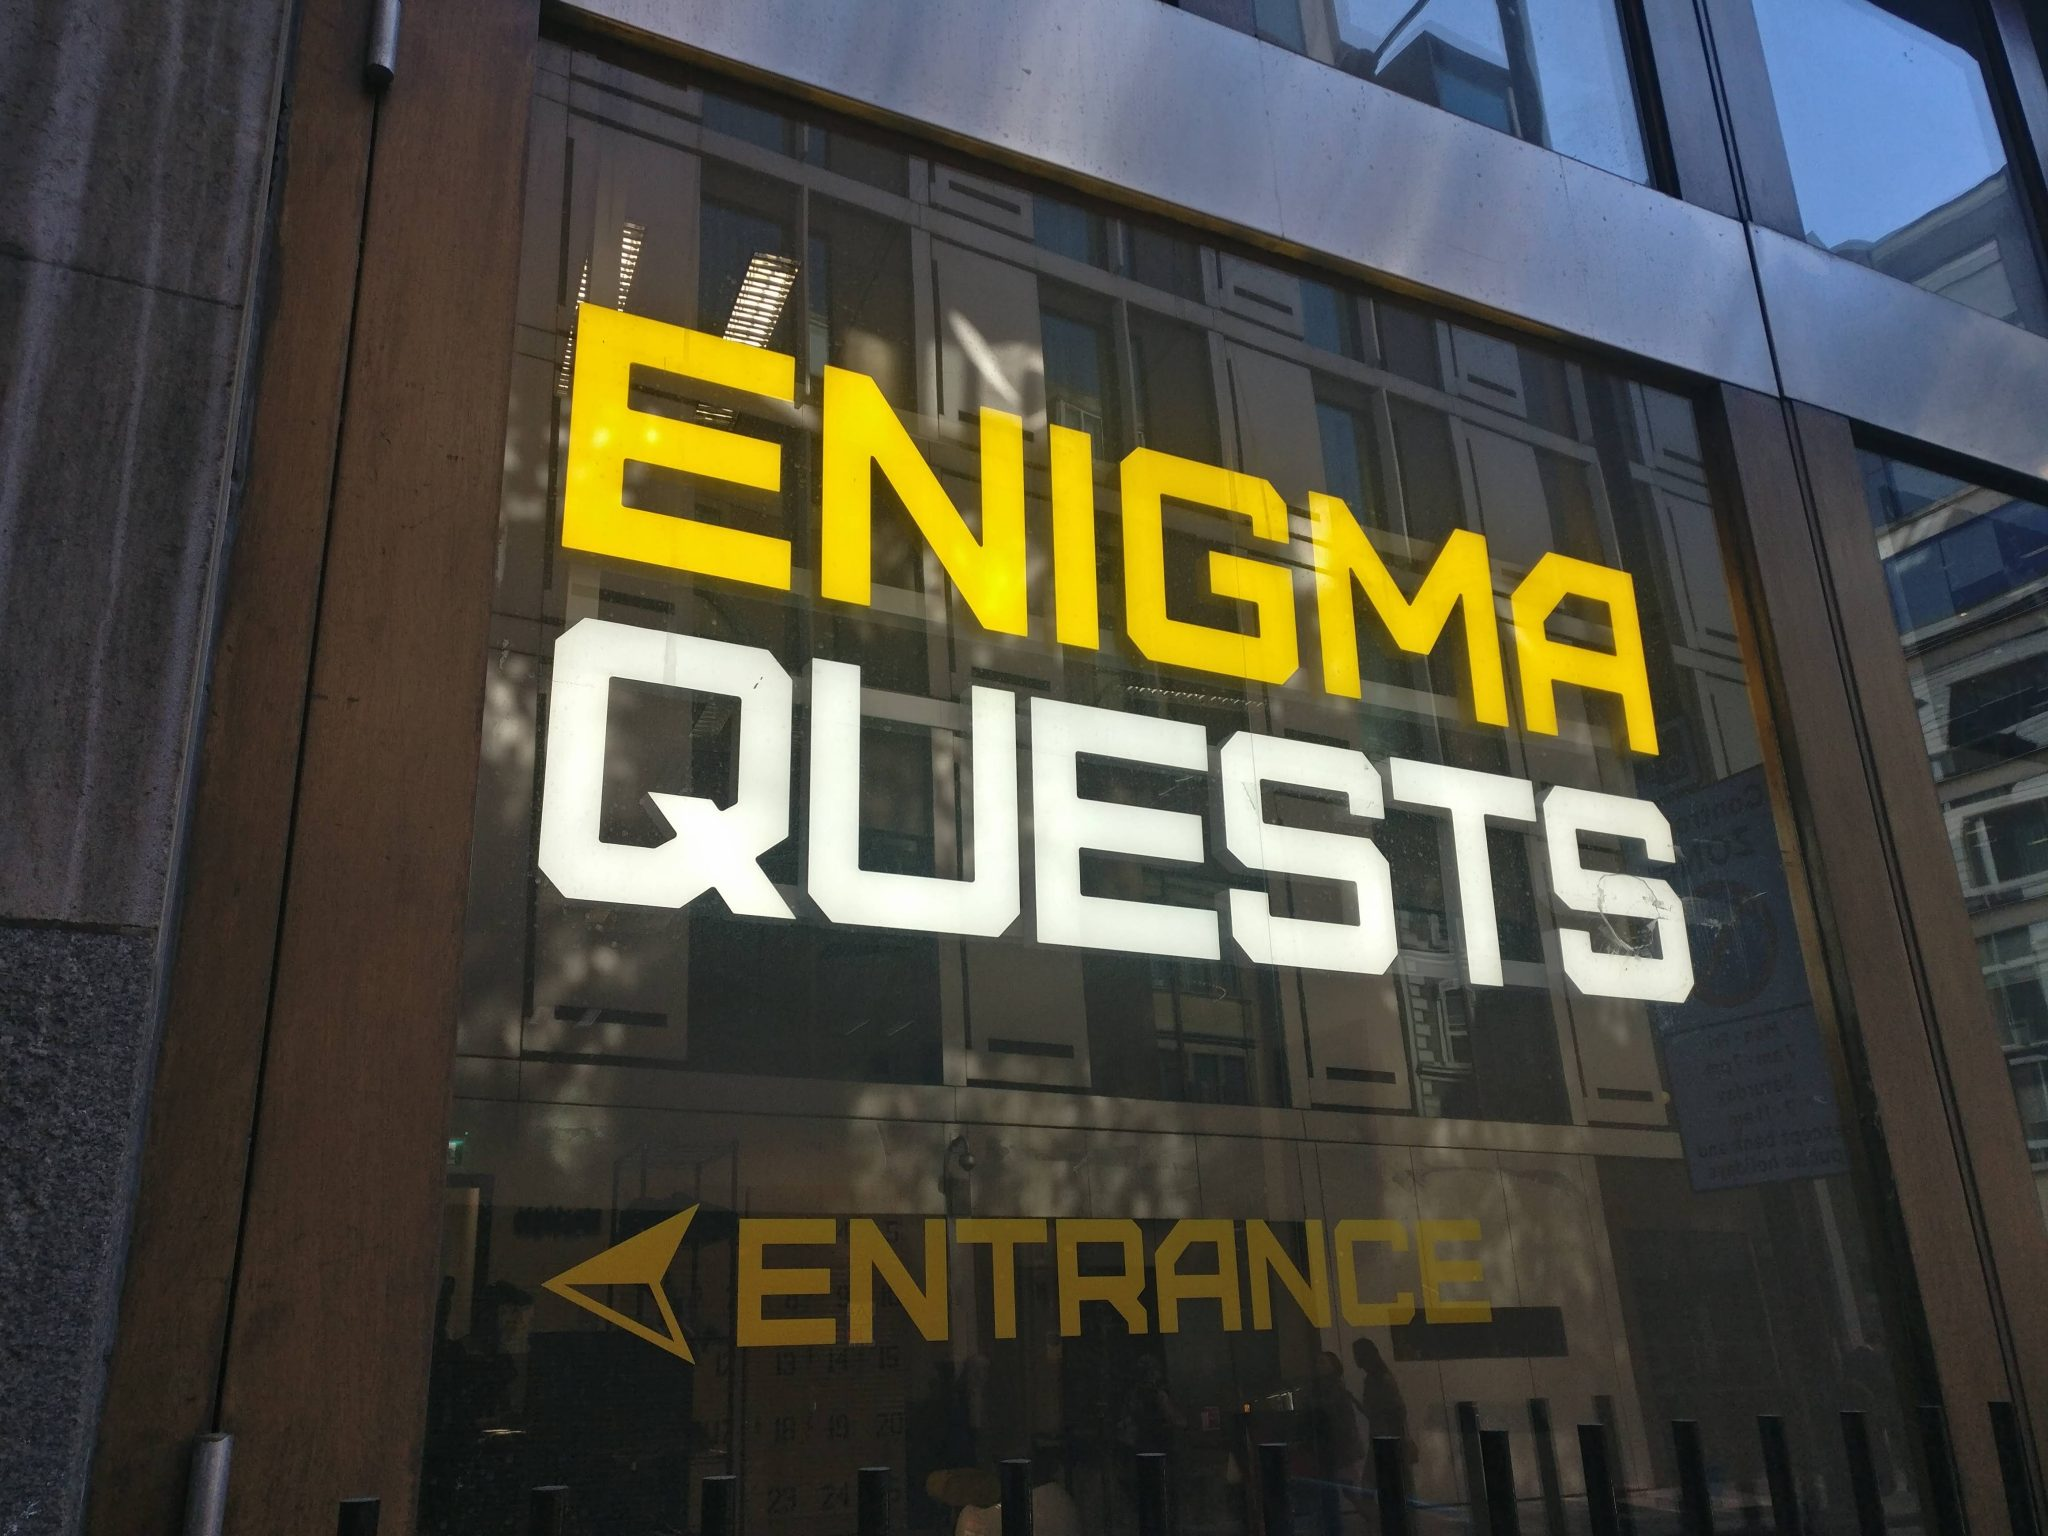 Enigma Quests building from the outside